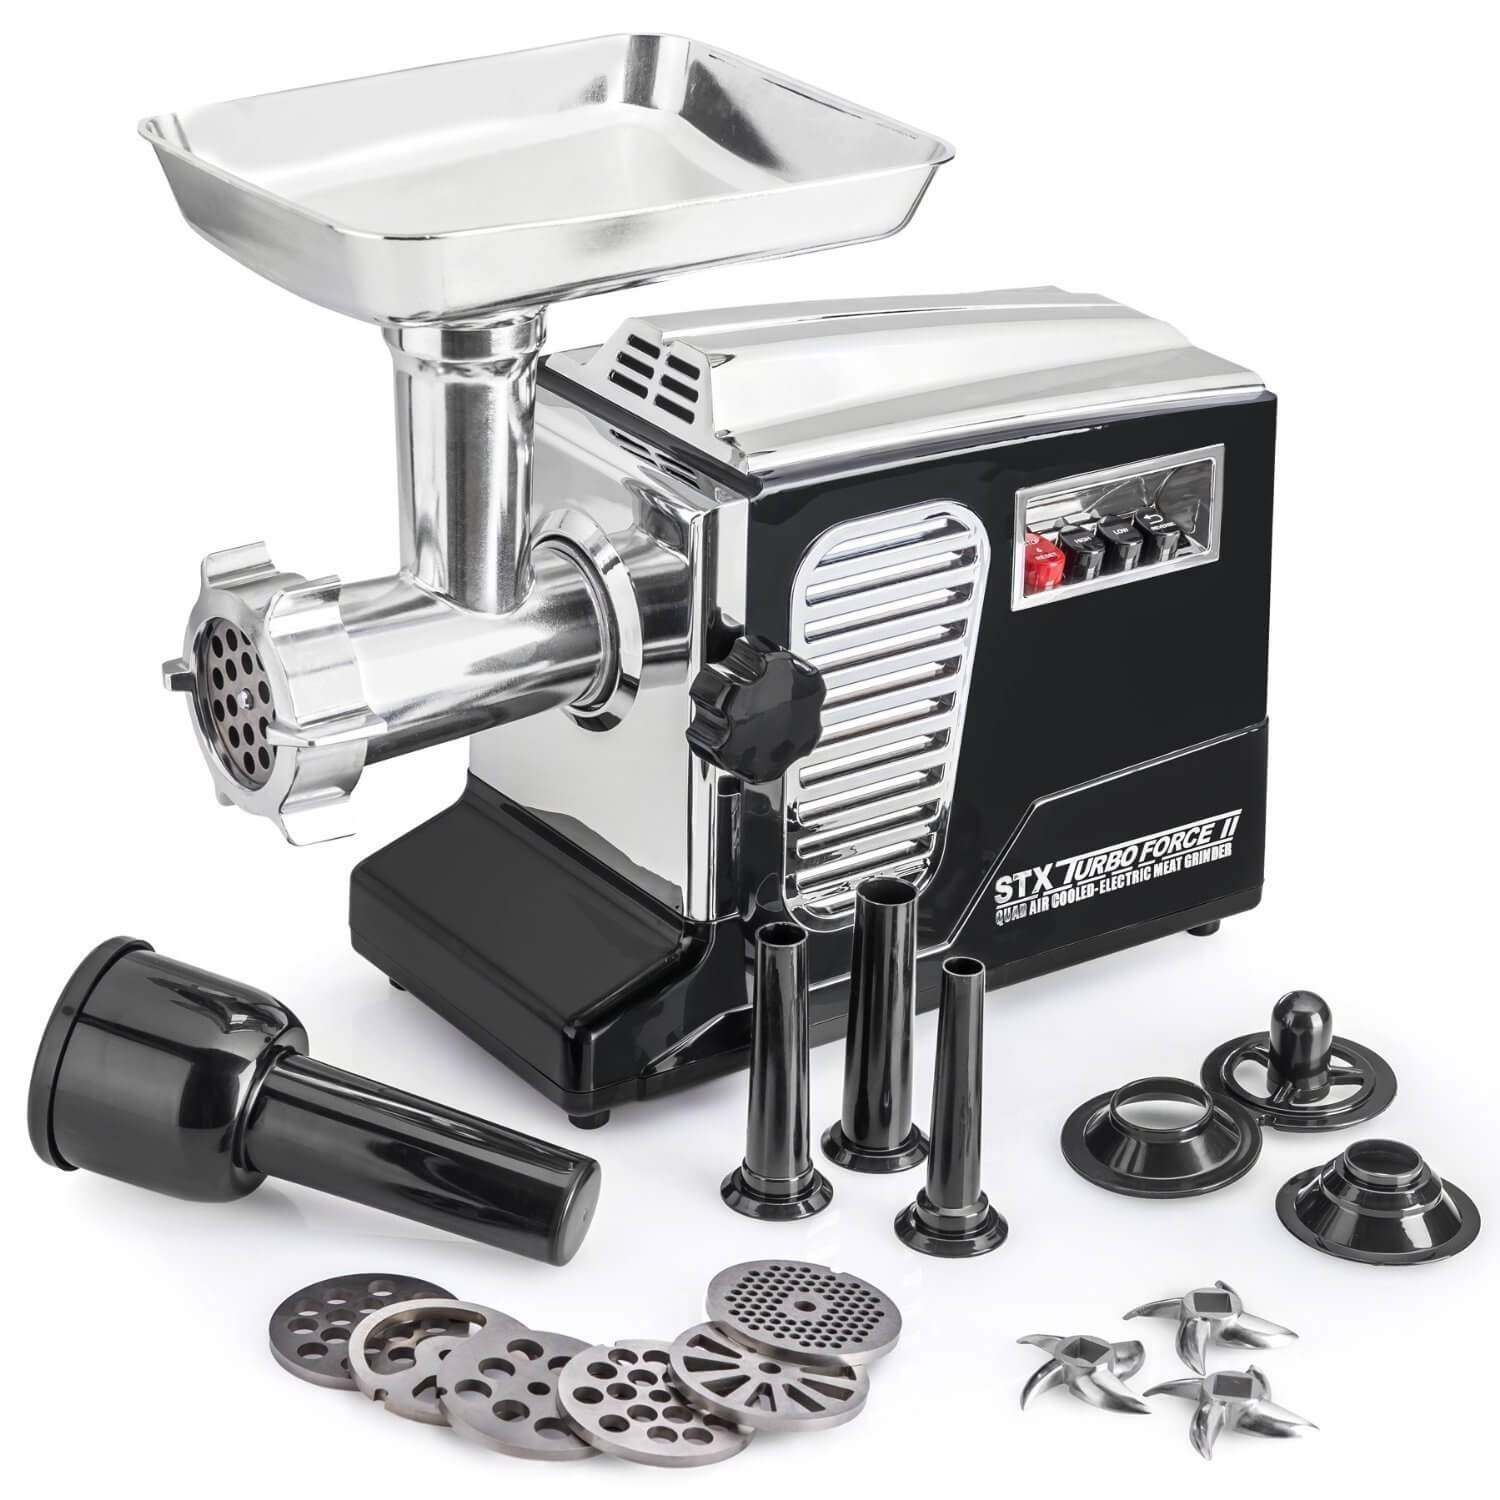 "The All New Patented Model STX-4000-TB2 Turboforce II ""Quad Air Cooled"" Black Electric Meat Grinder & Sausage Stuffer"